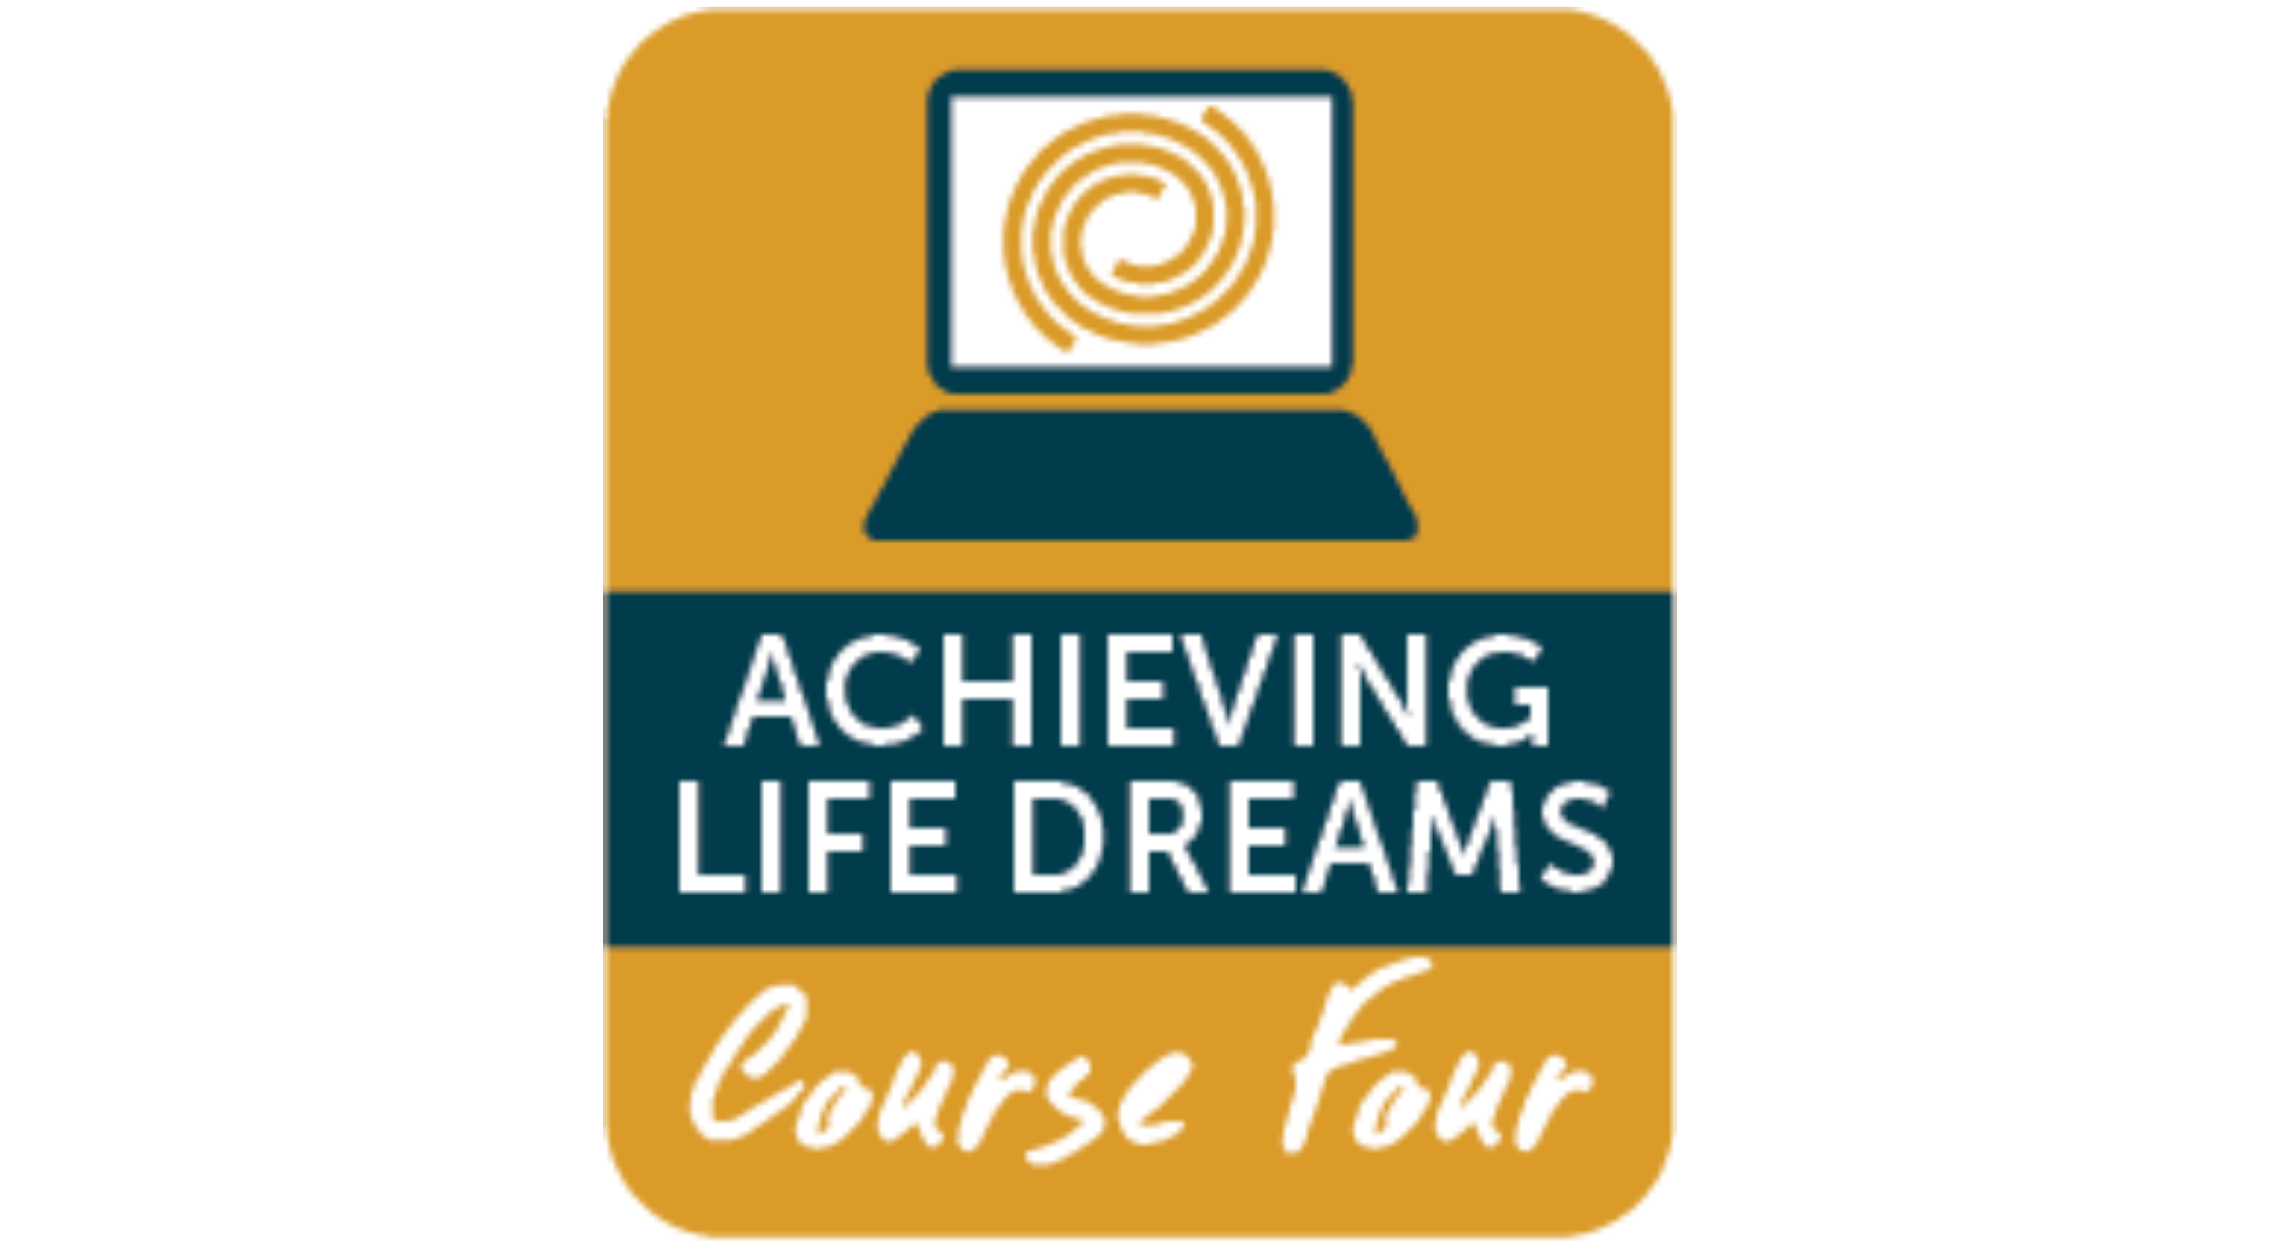 Course 4: Achieving Life Dreams